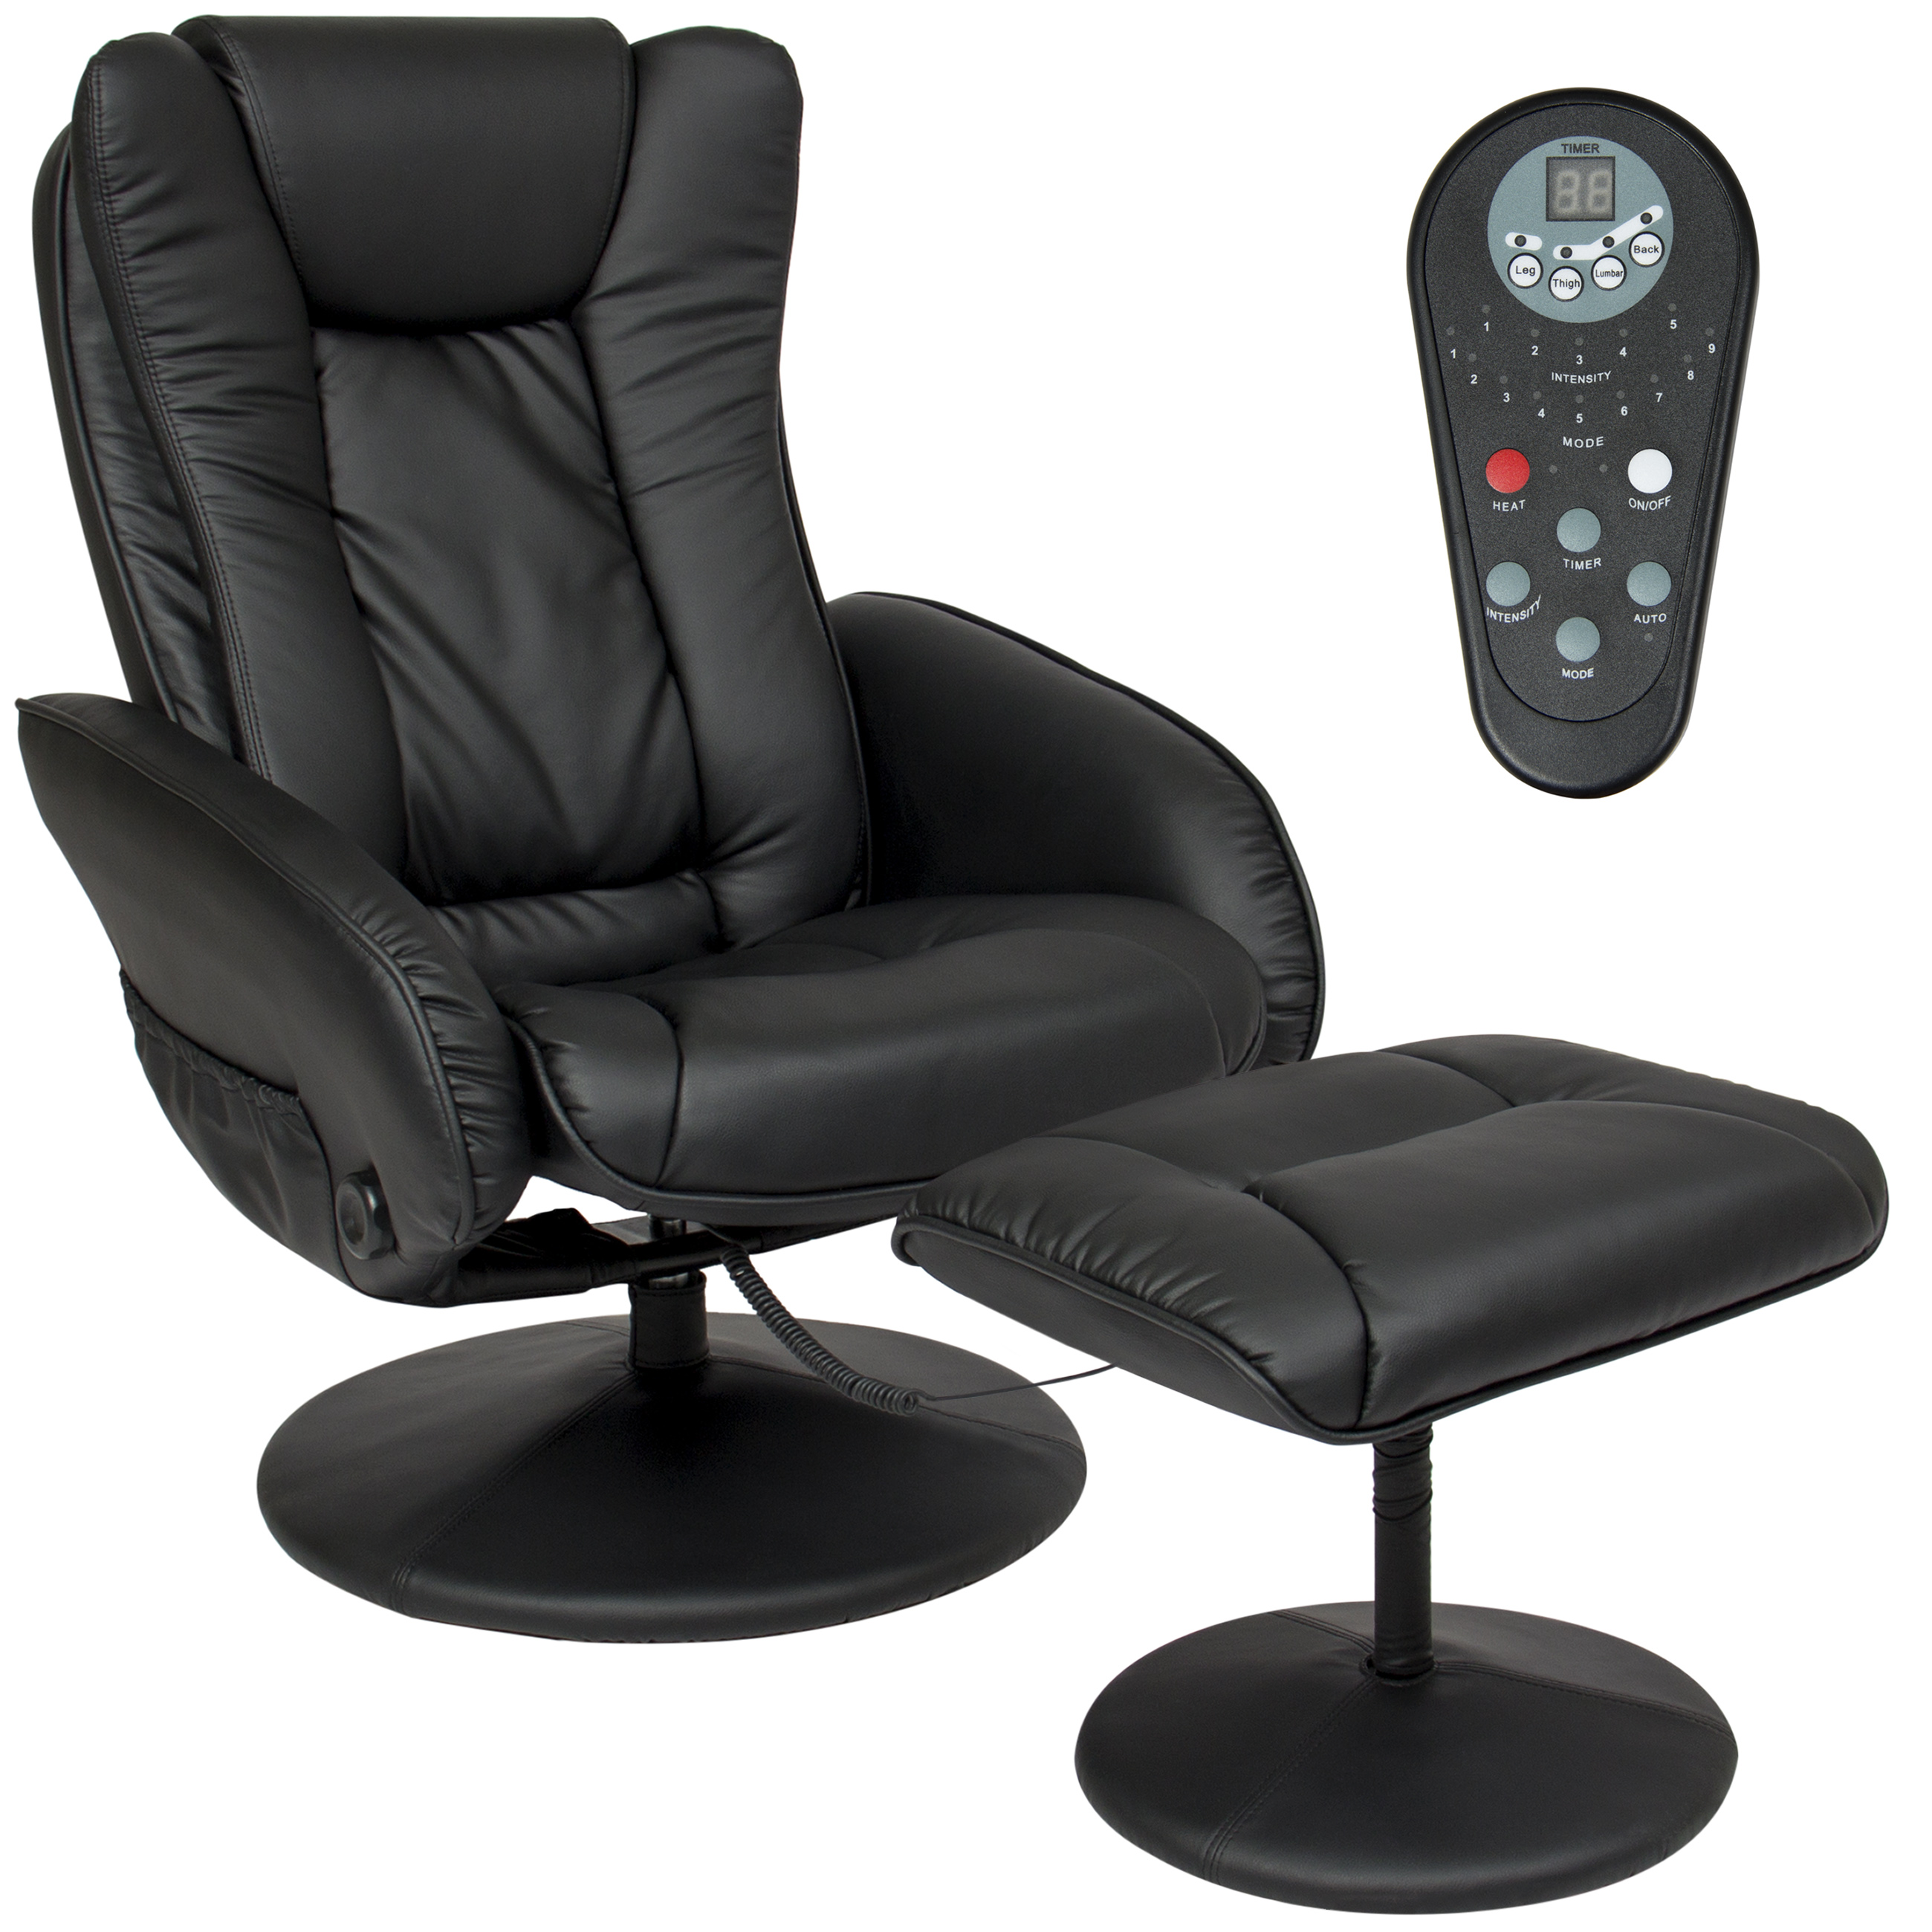 Review of Best Choice Products Faux Leather Electric Massage Recliner Chair w/ Stool Ottoman